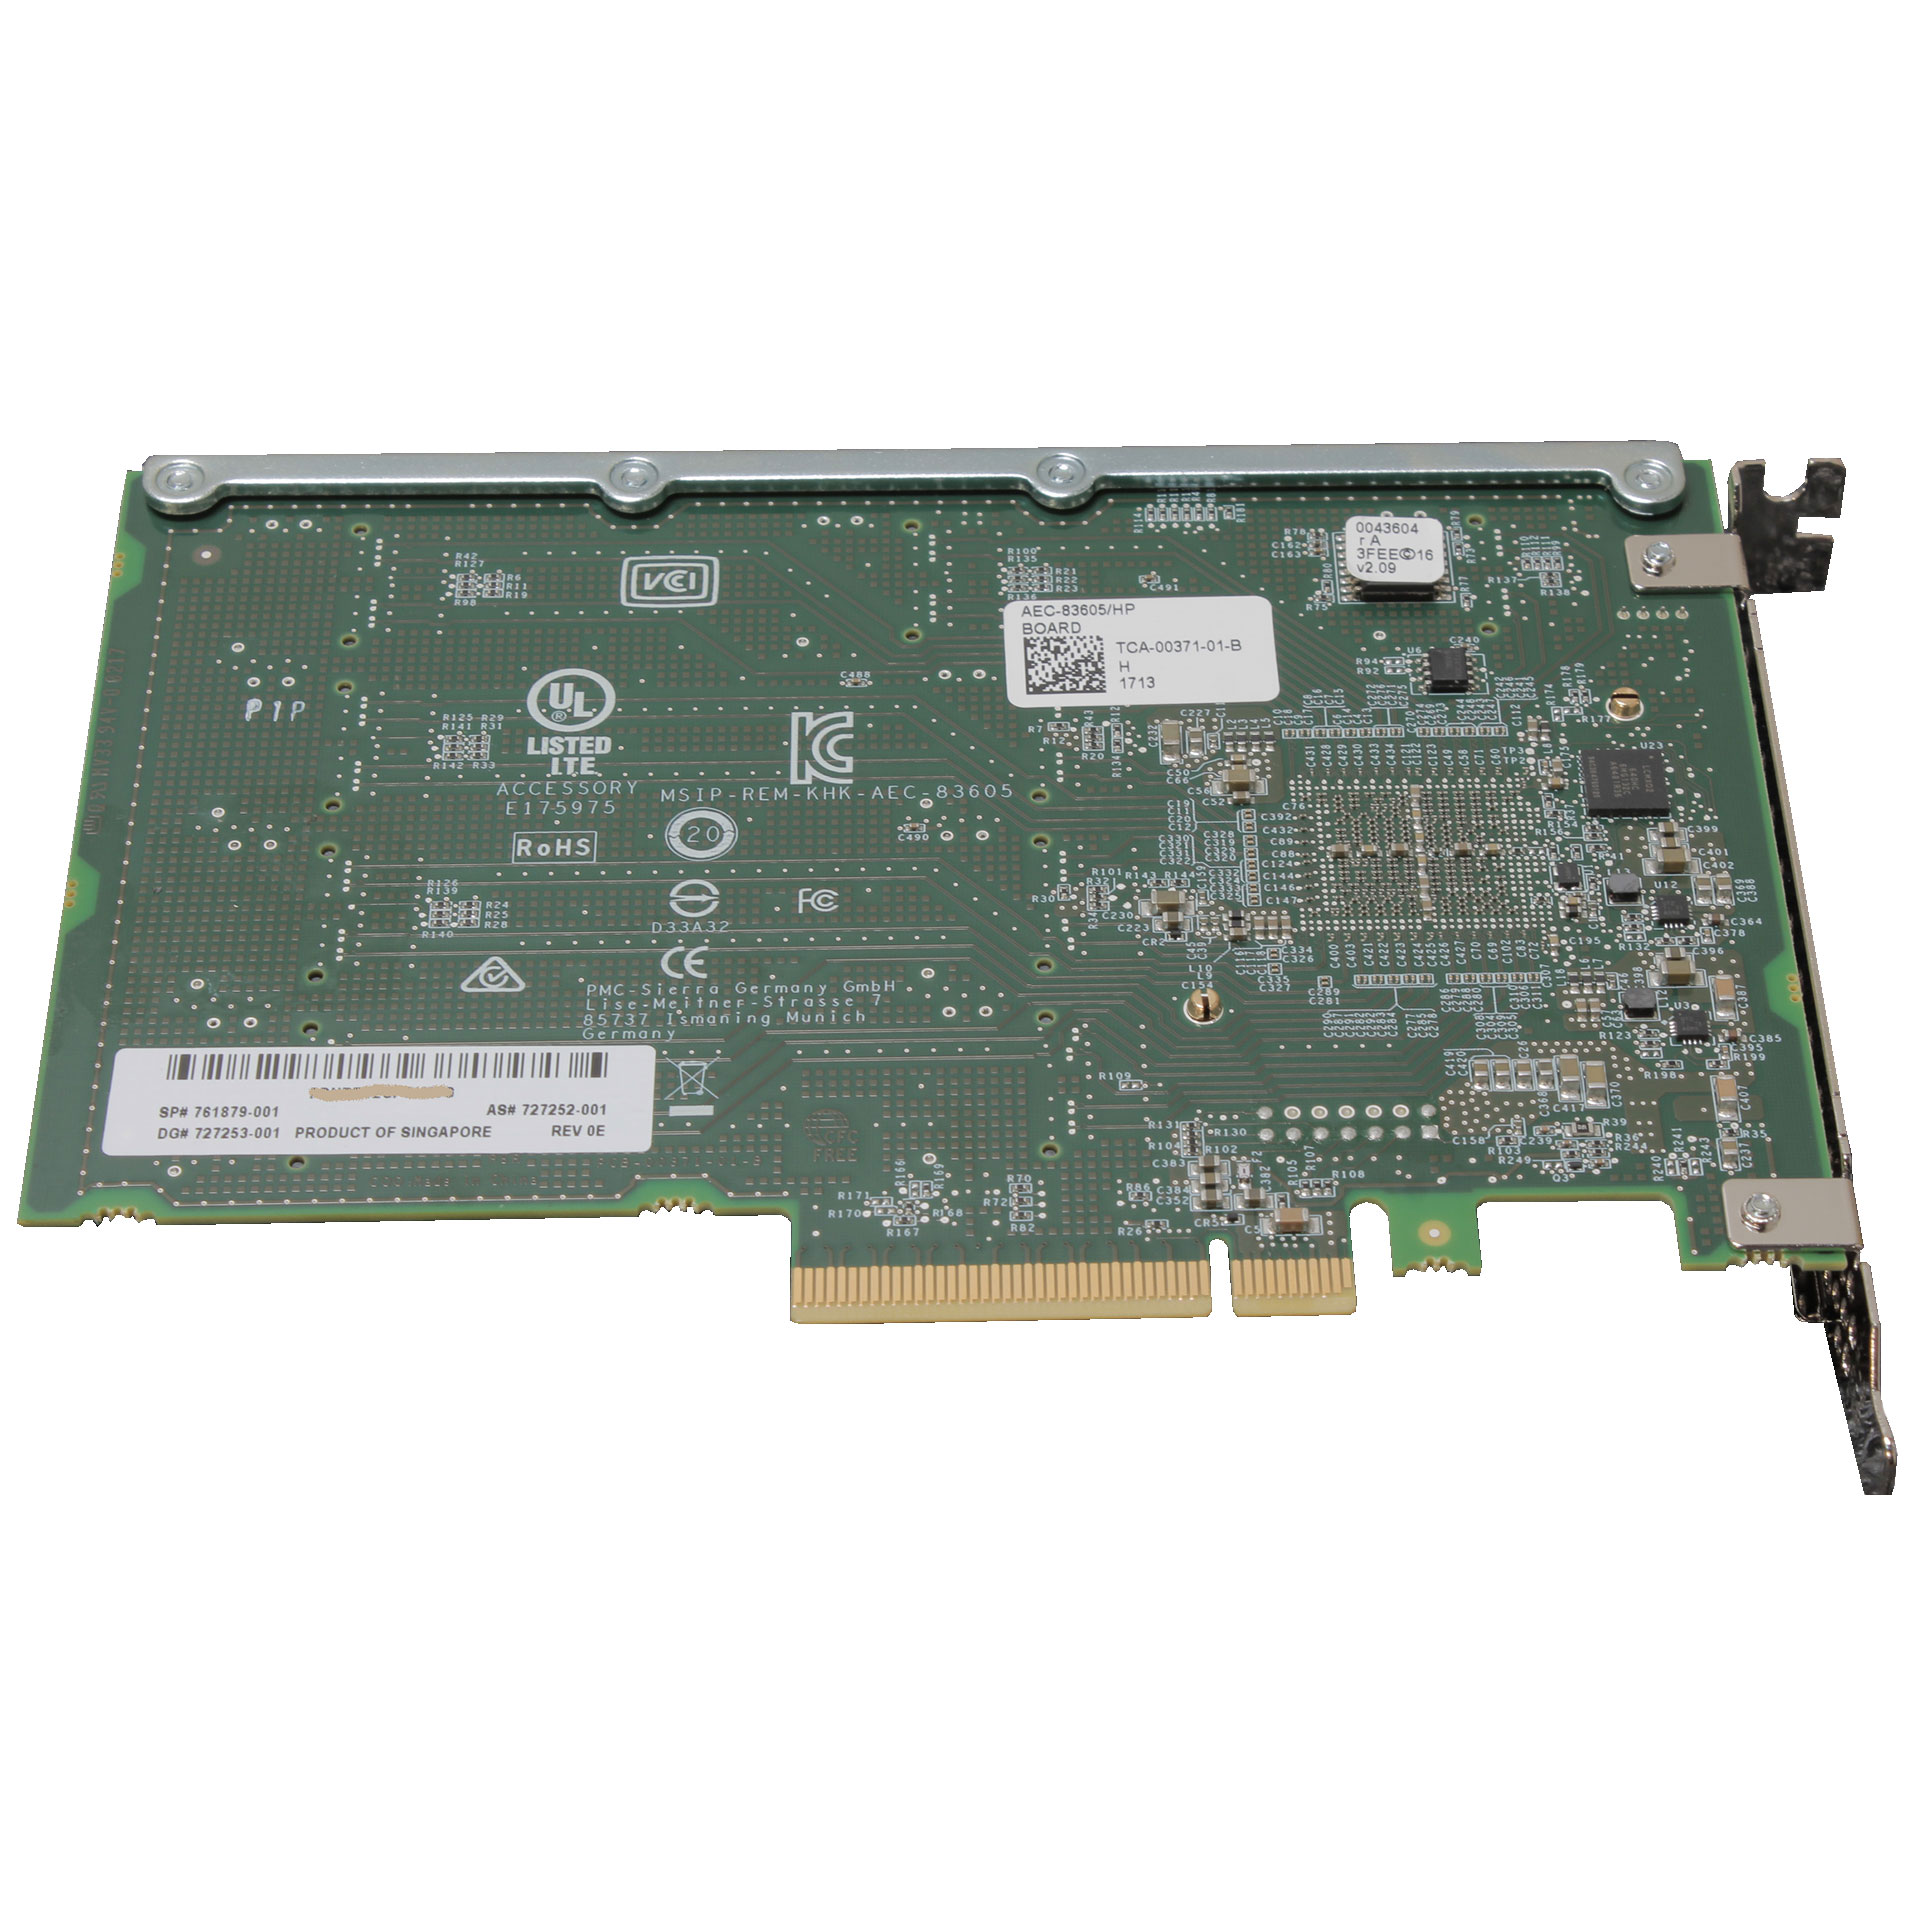 HP 761879-001 SMART ARRAY 12GB PCI-E 3 X8 SAS EXPANDER CARD